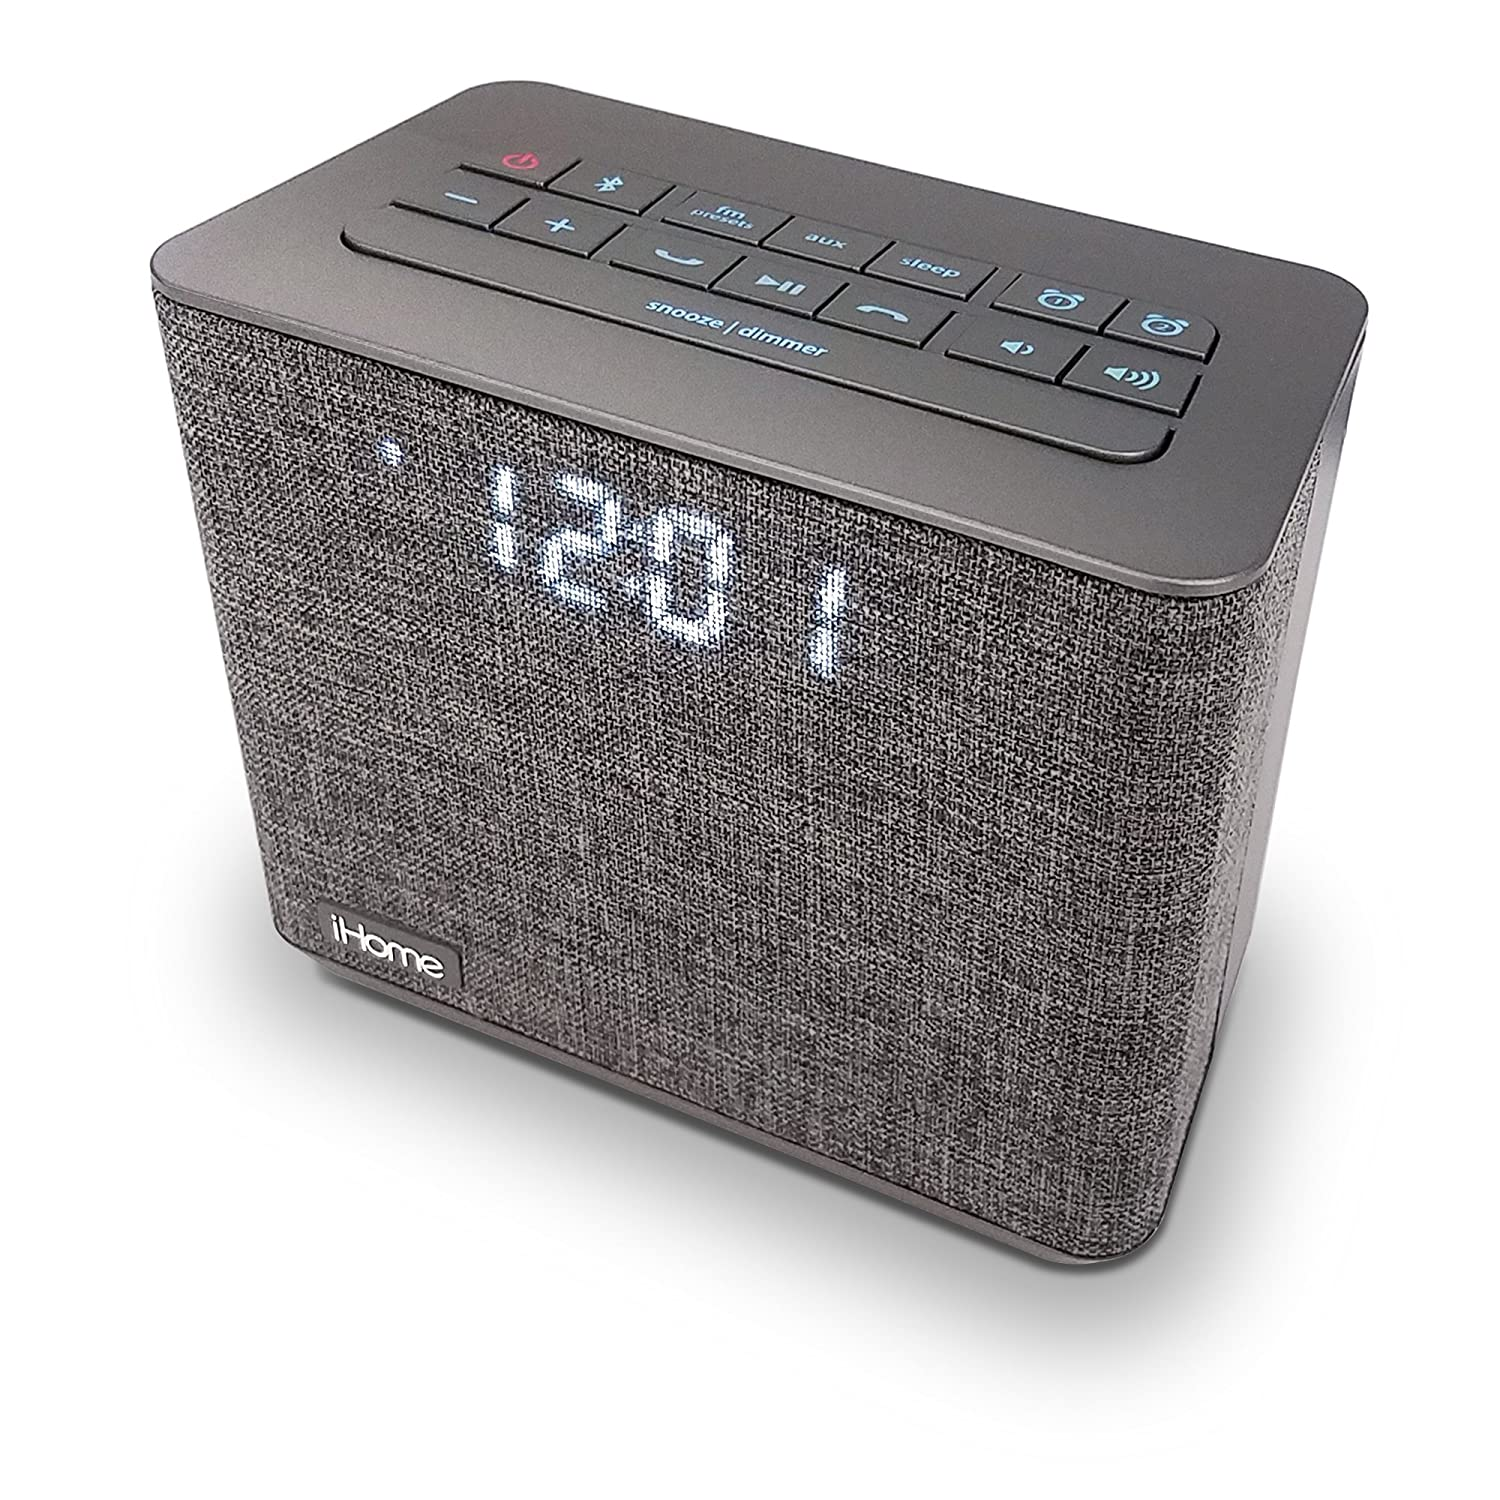 iHome iBT232 Bluetooth Dual Alarm FM Clock Radio with Speakerphone and USB Charging -Gray (Newest Model)